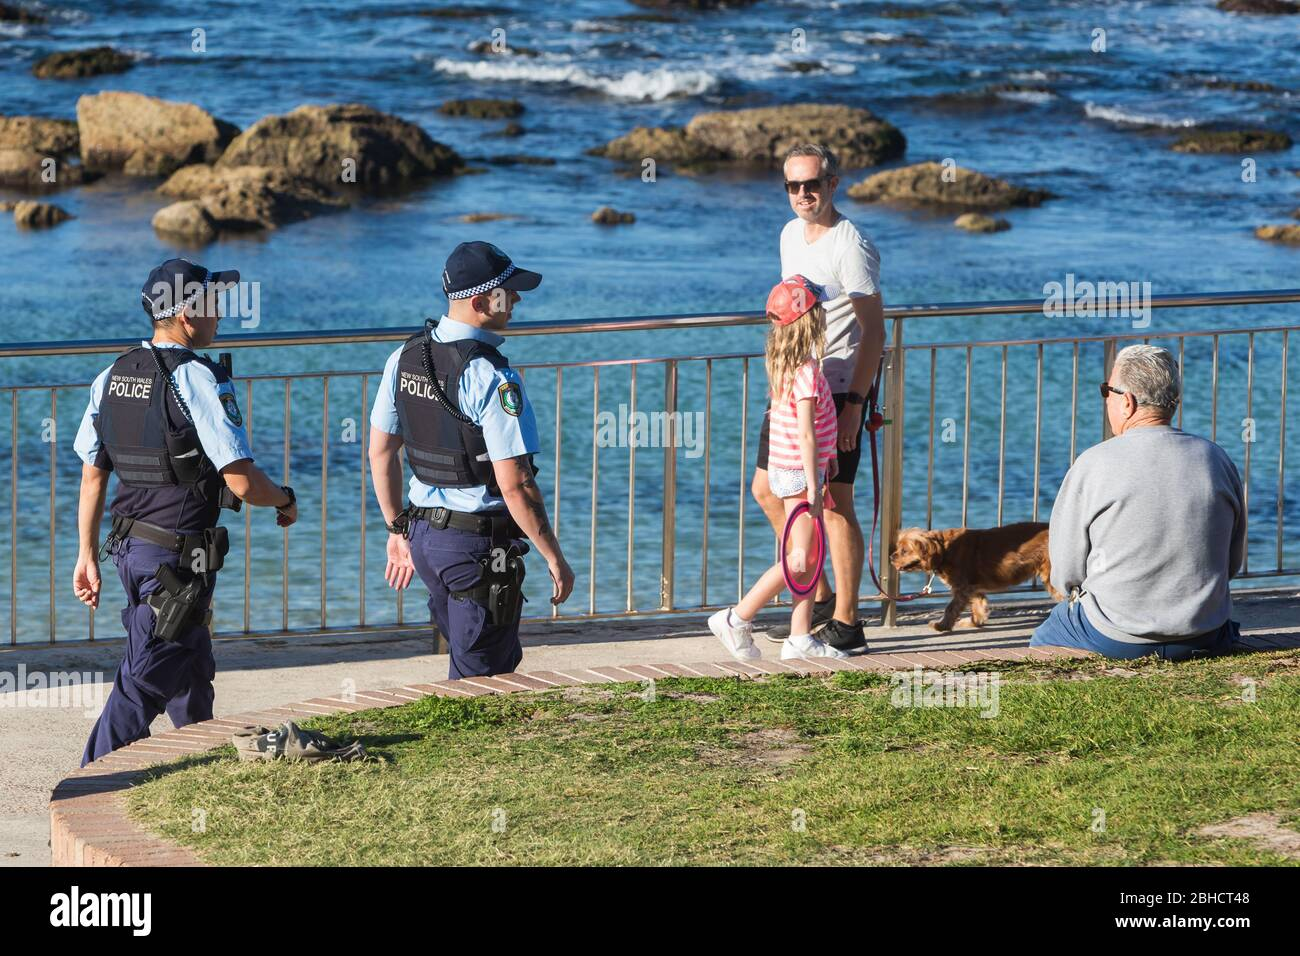 Sydney, Australia. Saturday 25th April 2020. Bronte Beach in Sydney's eastern suburbs is closed due to the COVIC-19 pandemic. Police moving on locals sitting down which is not allowed. Credit Paul Lovelace/Alamy Live News Stock Photo